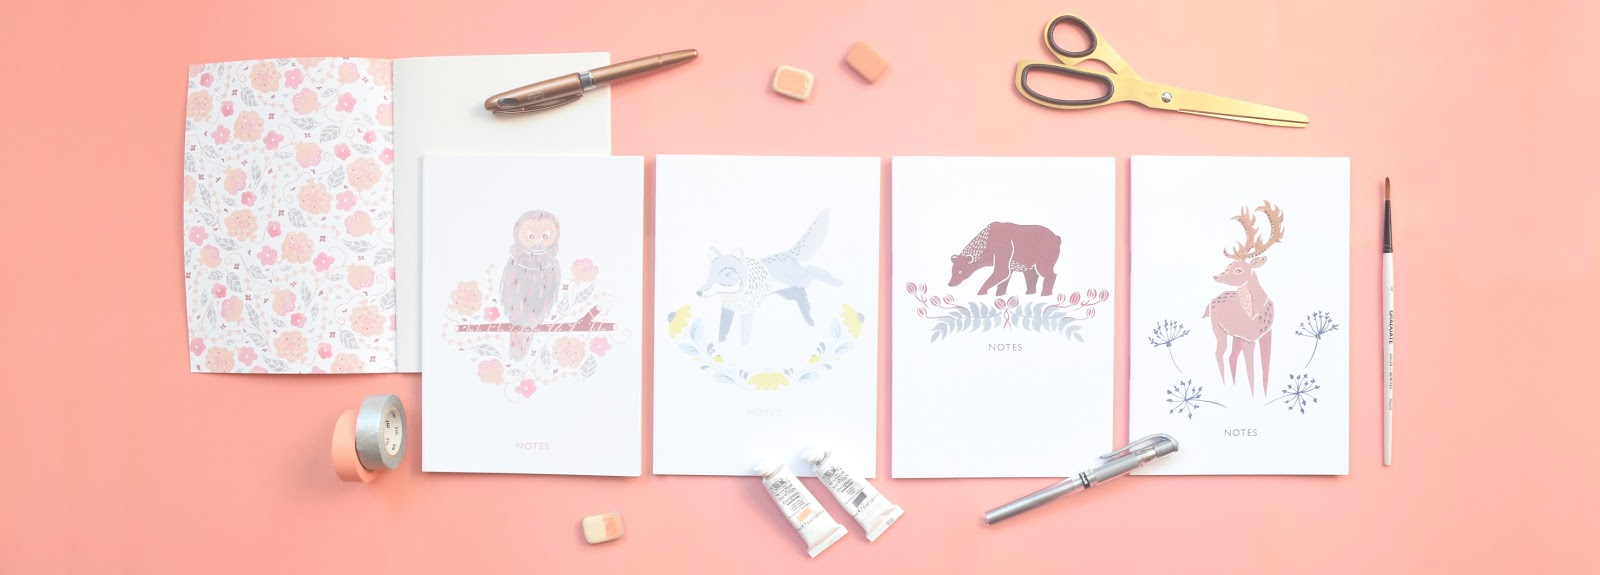 illustrated animal notebooks flat lay